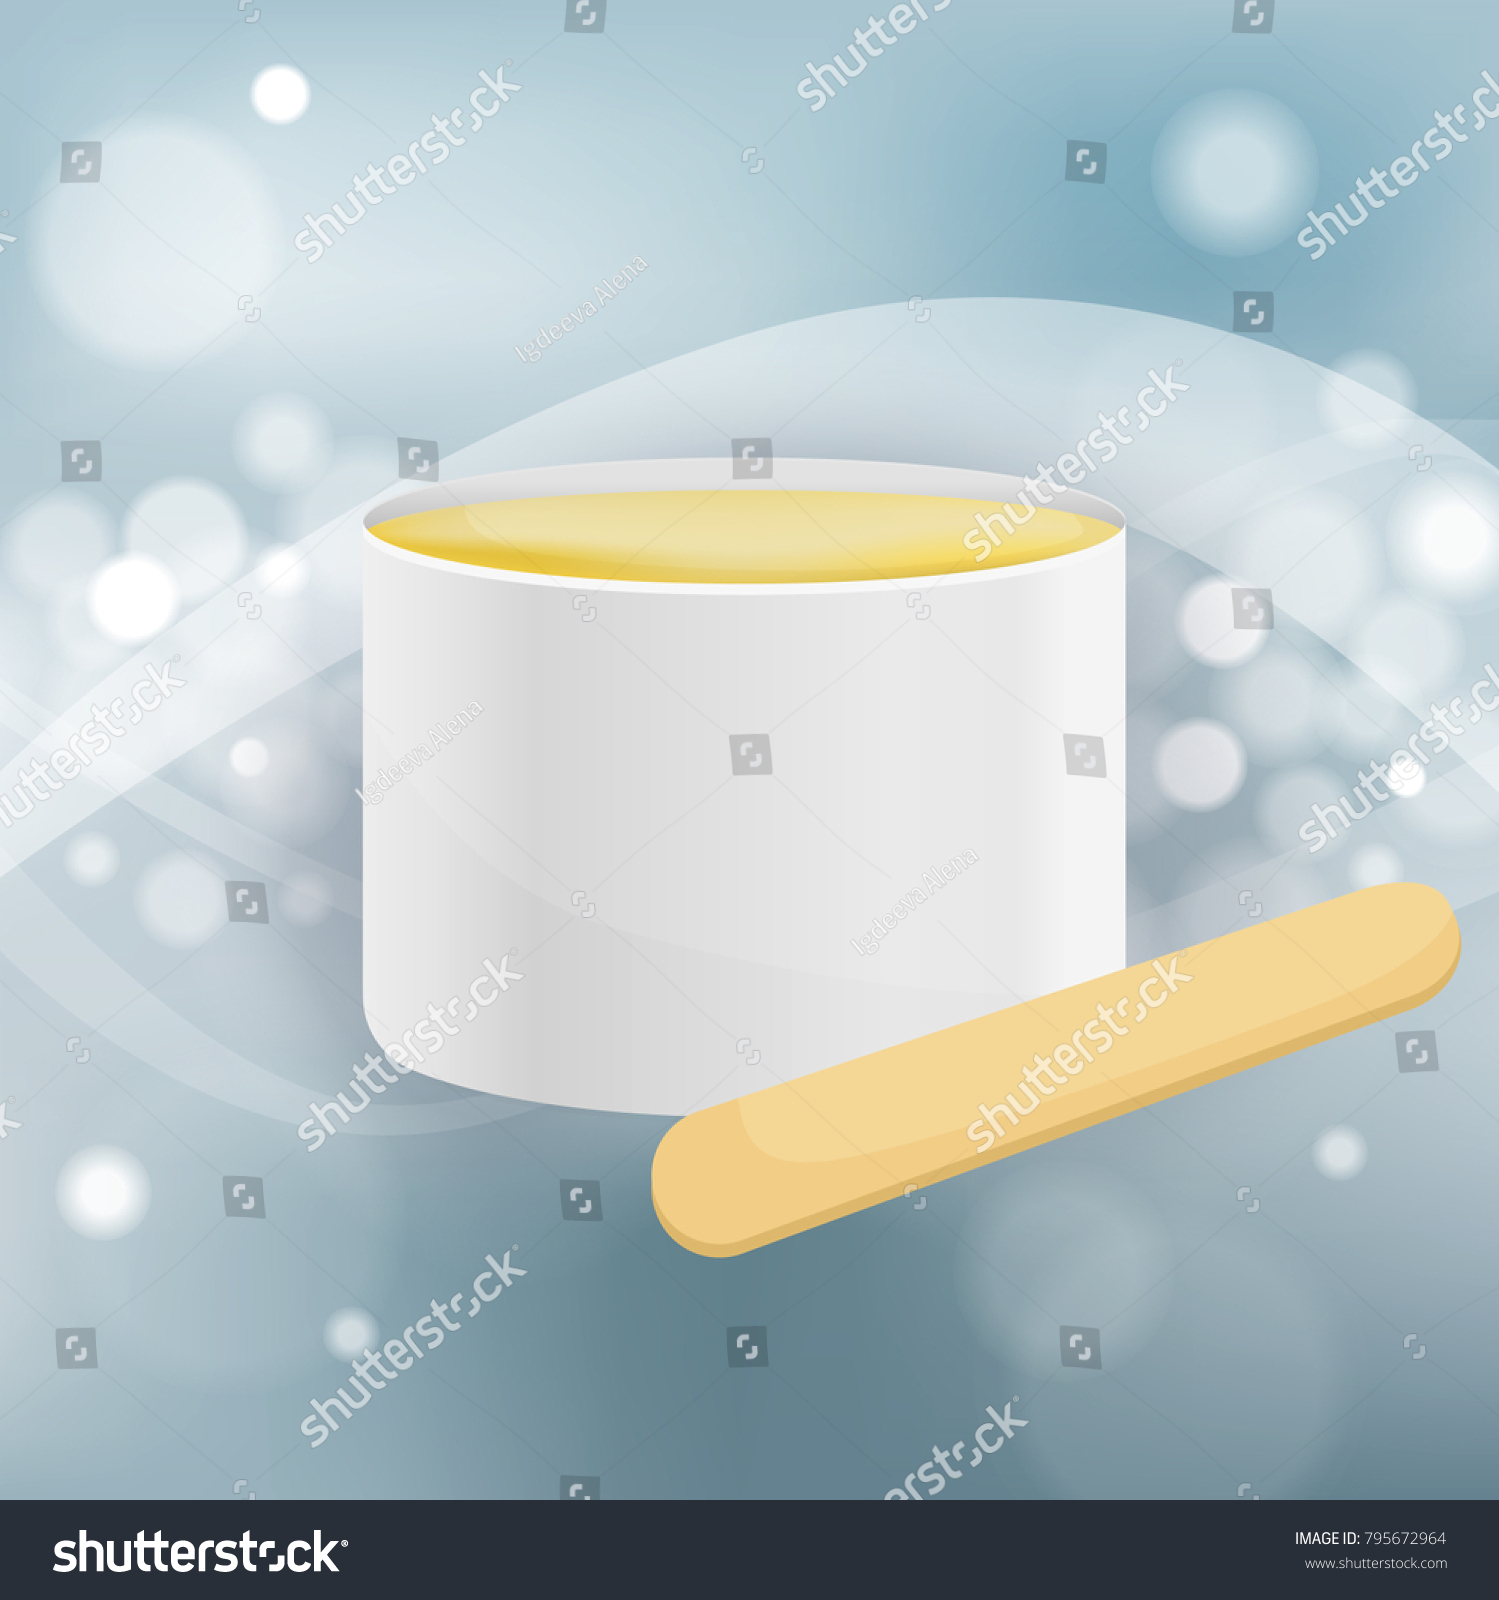 Waxing Stick Wax Jar Hair Removal Stock Vector Royalty Free 795672964